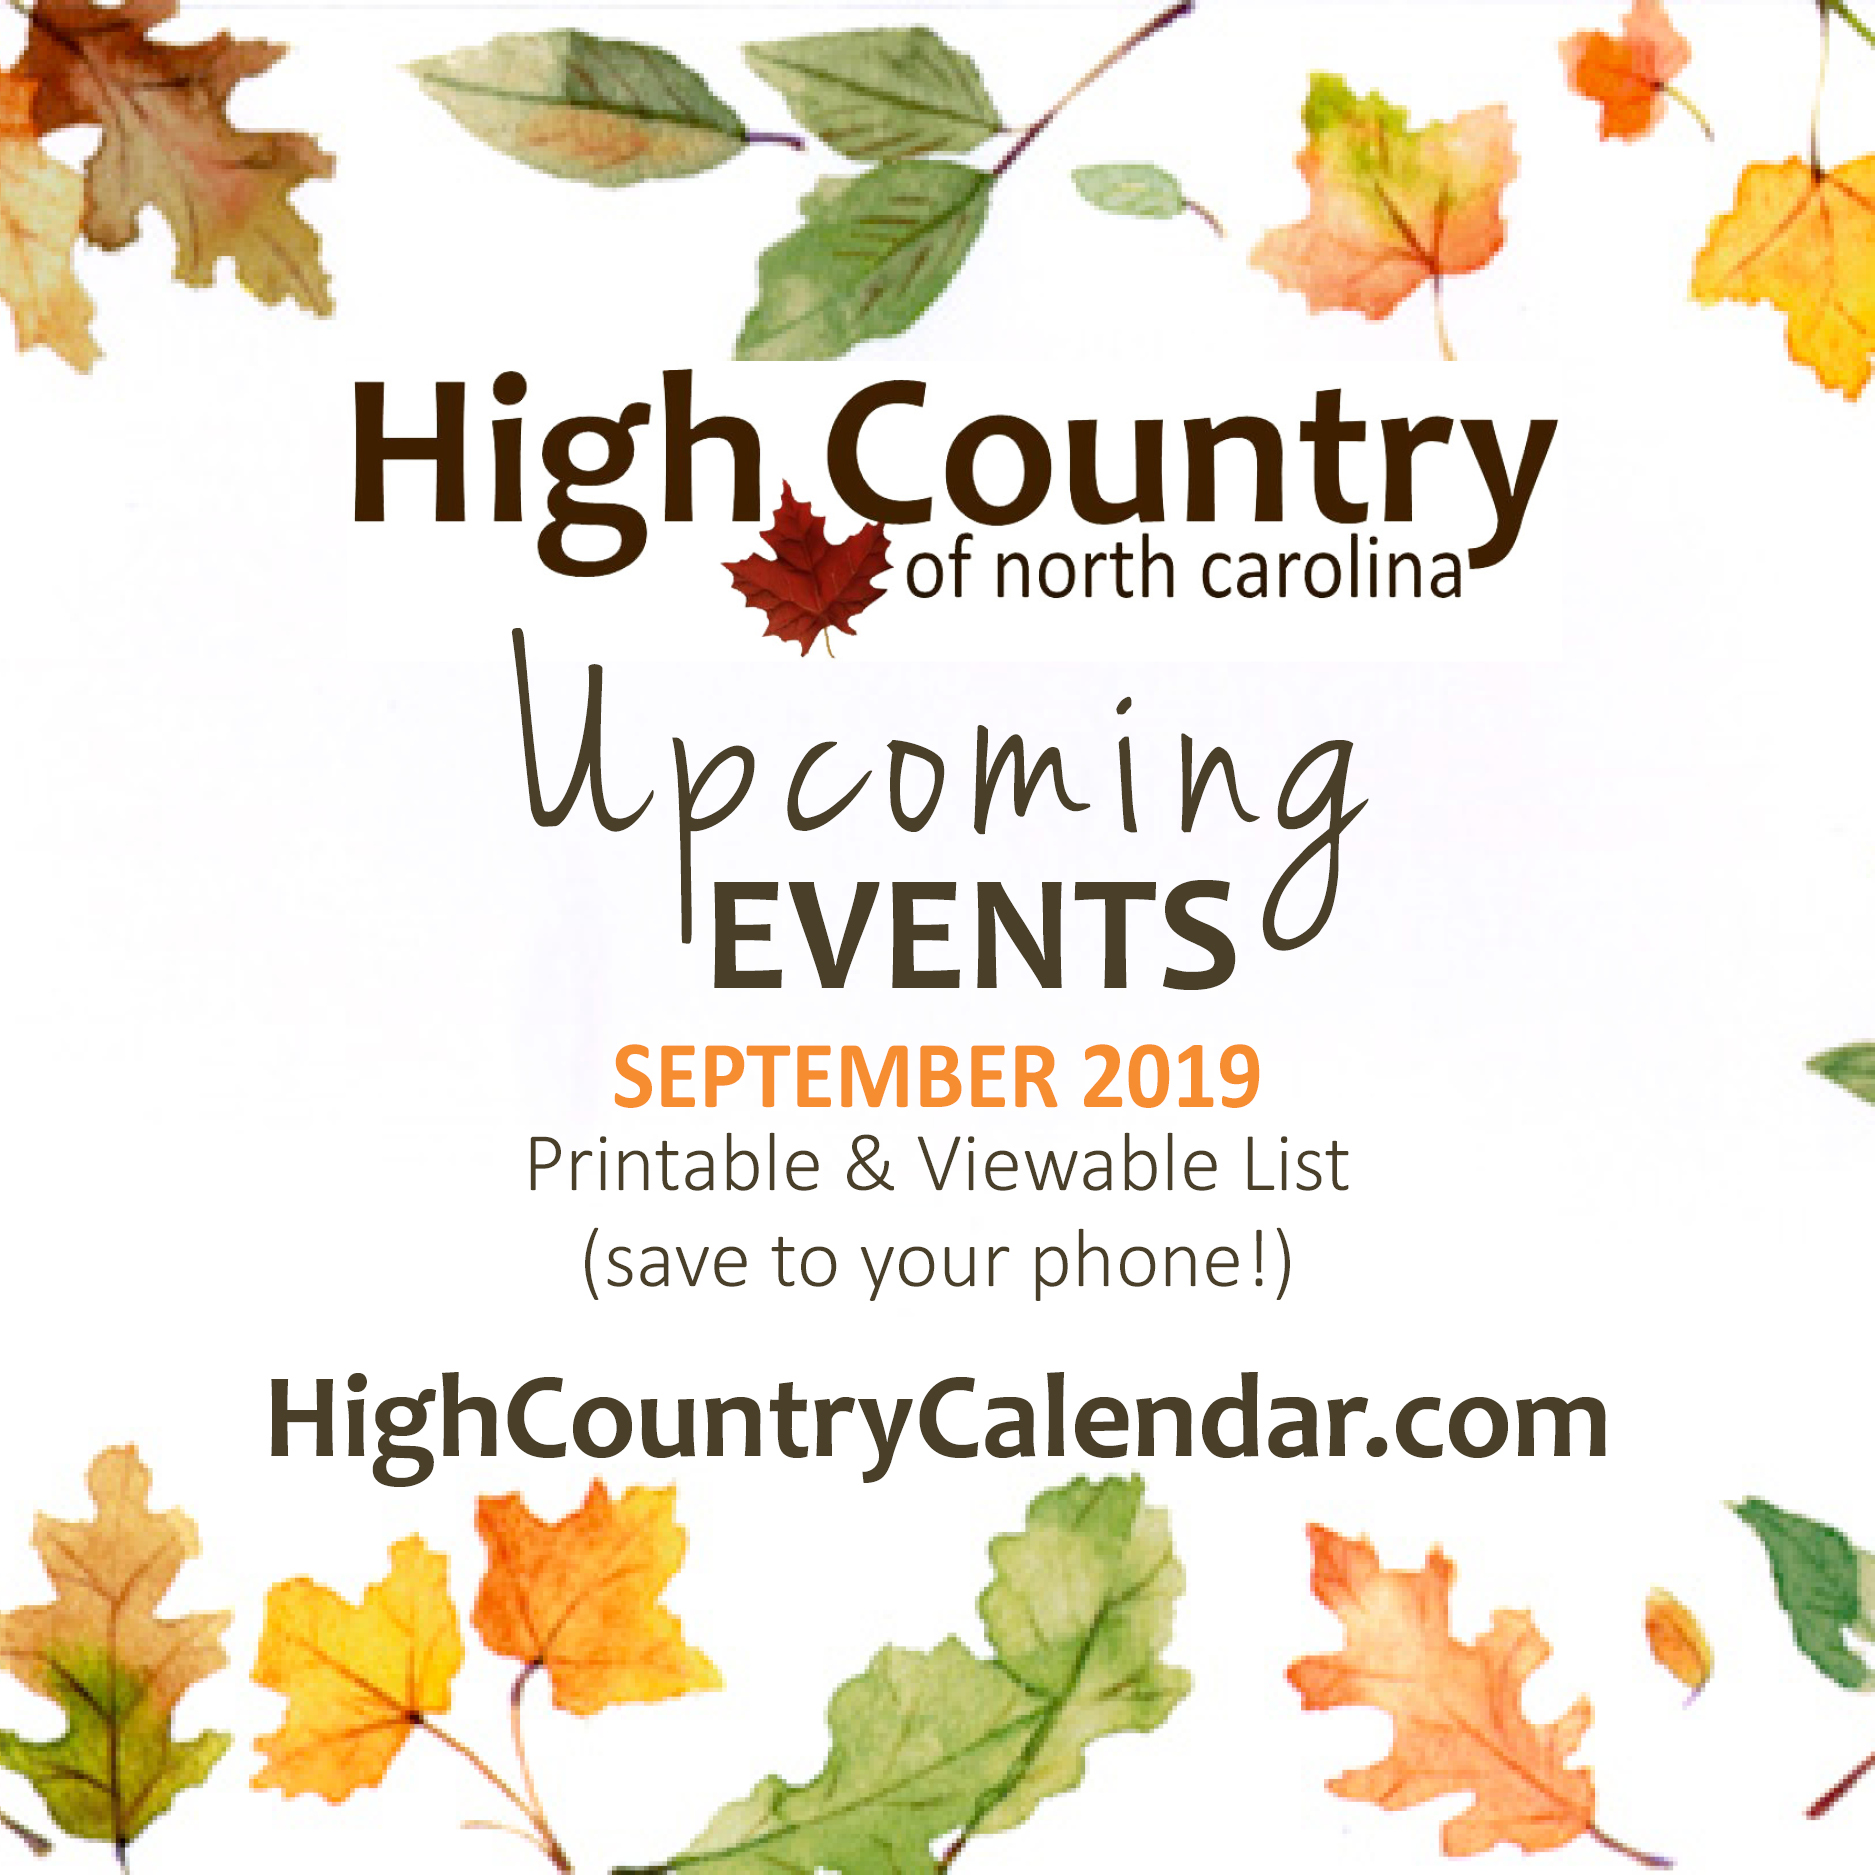 High Country NC Sept 2019 Upcoming Events